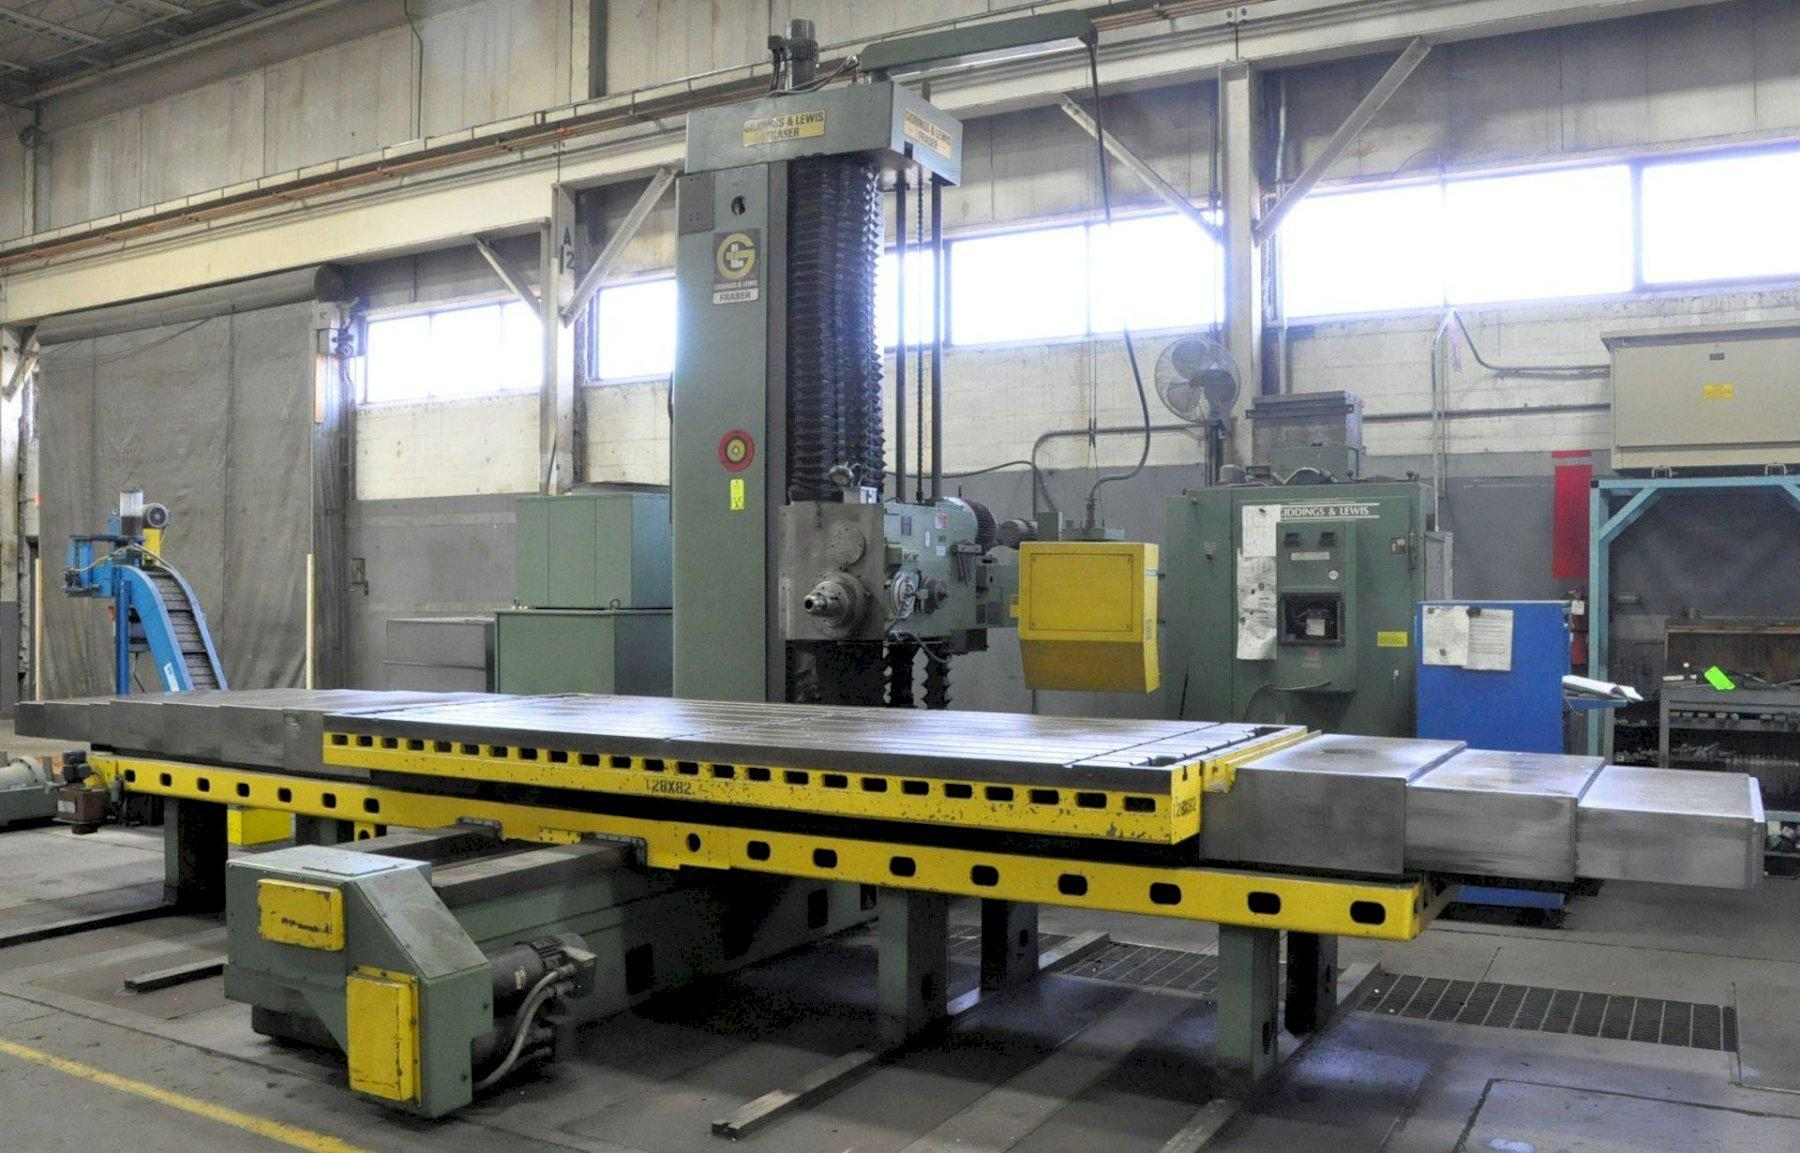 "5"" Giddings & Lewis Model 70A-D5-T, Table Type CNC Horizontal Boring Mill, Retrofit Controls, 146"" x 60"" T-Slotted Table Size, 128"" X-Axis, 82"" Y-Axis, 34"" Z-Axis, 58"" W-Axis"